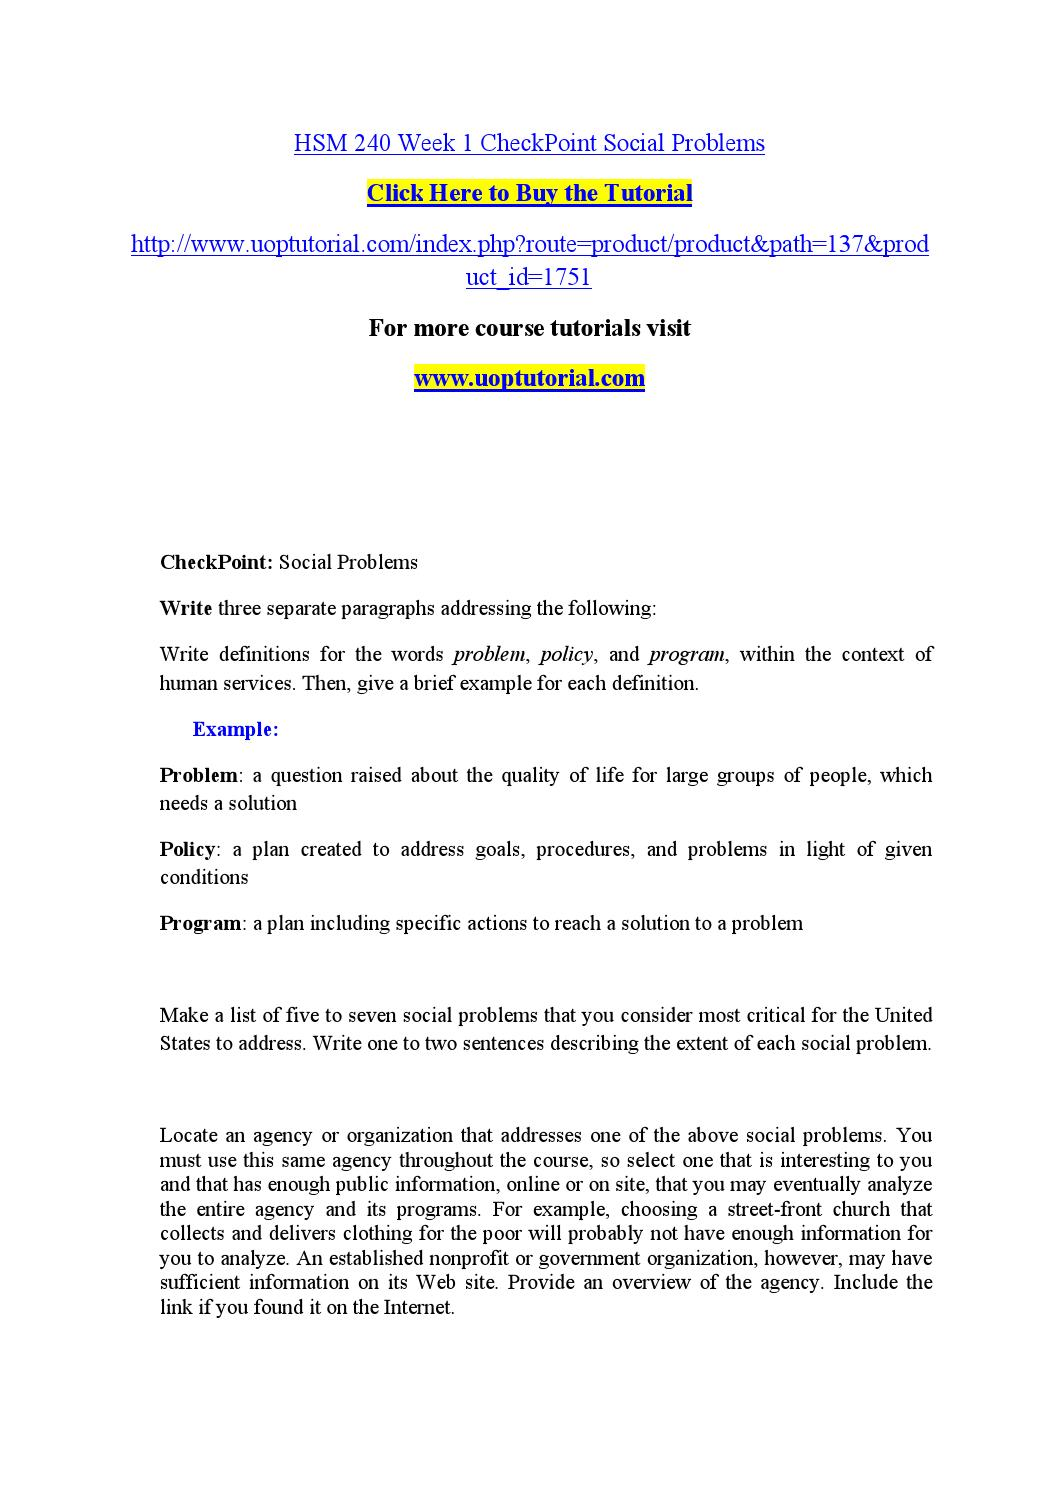 hsm 240 week 1 checkpoint social problems by hathikask - issuu